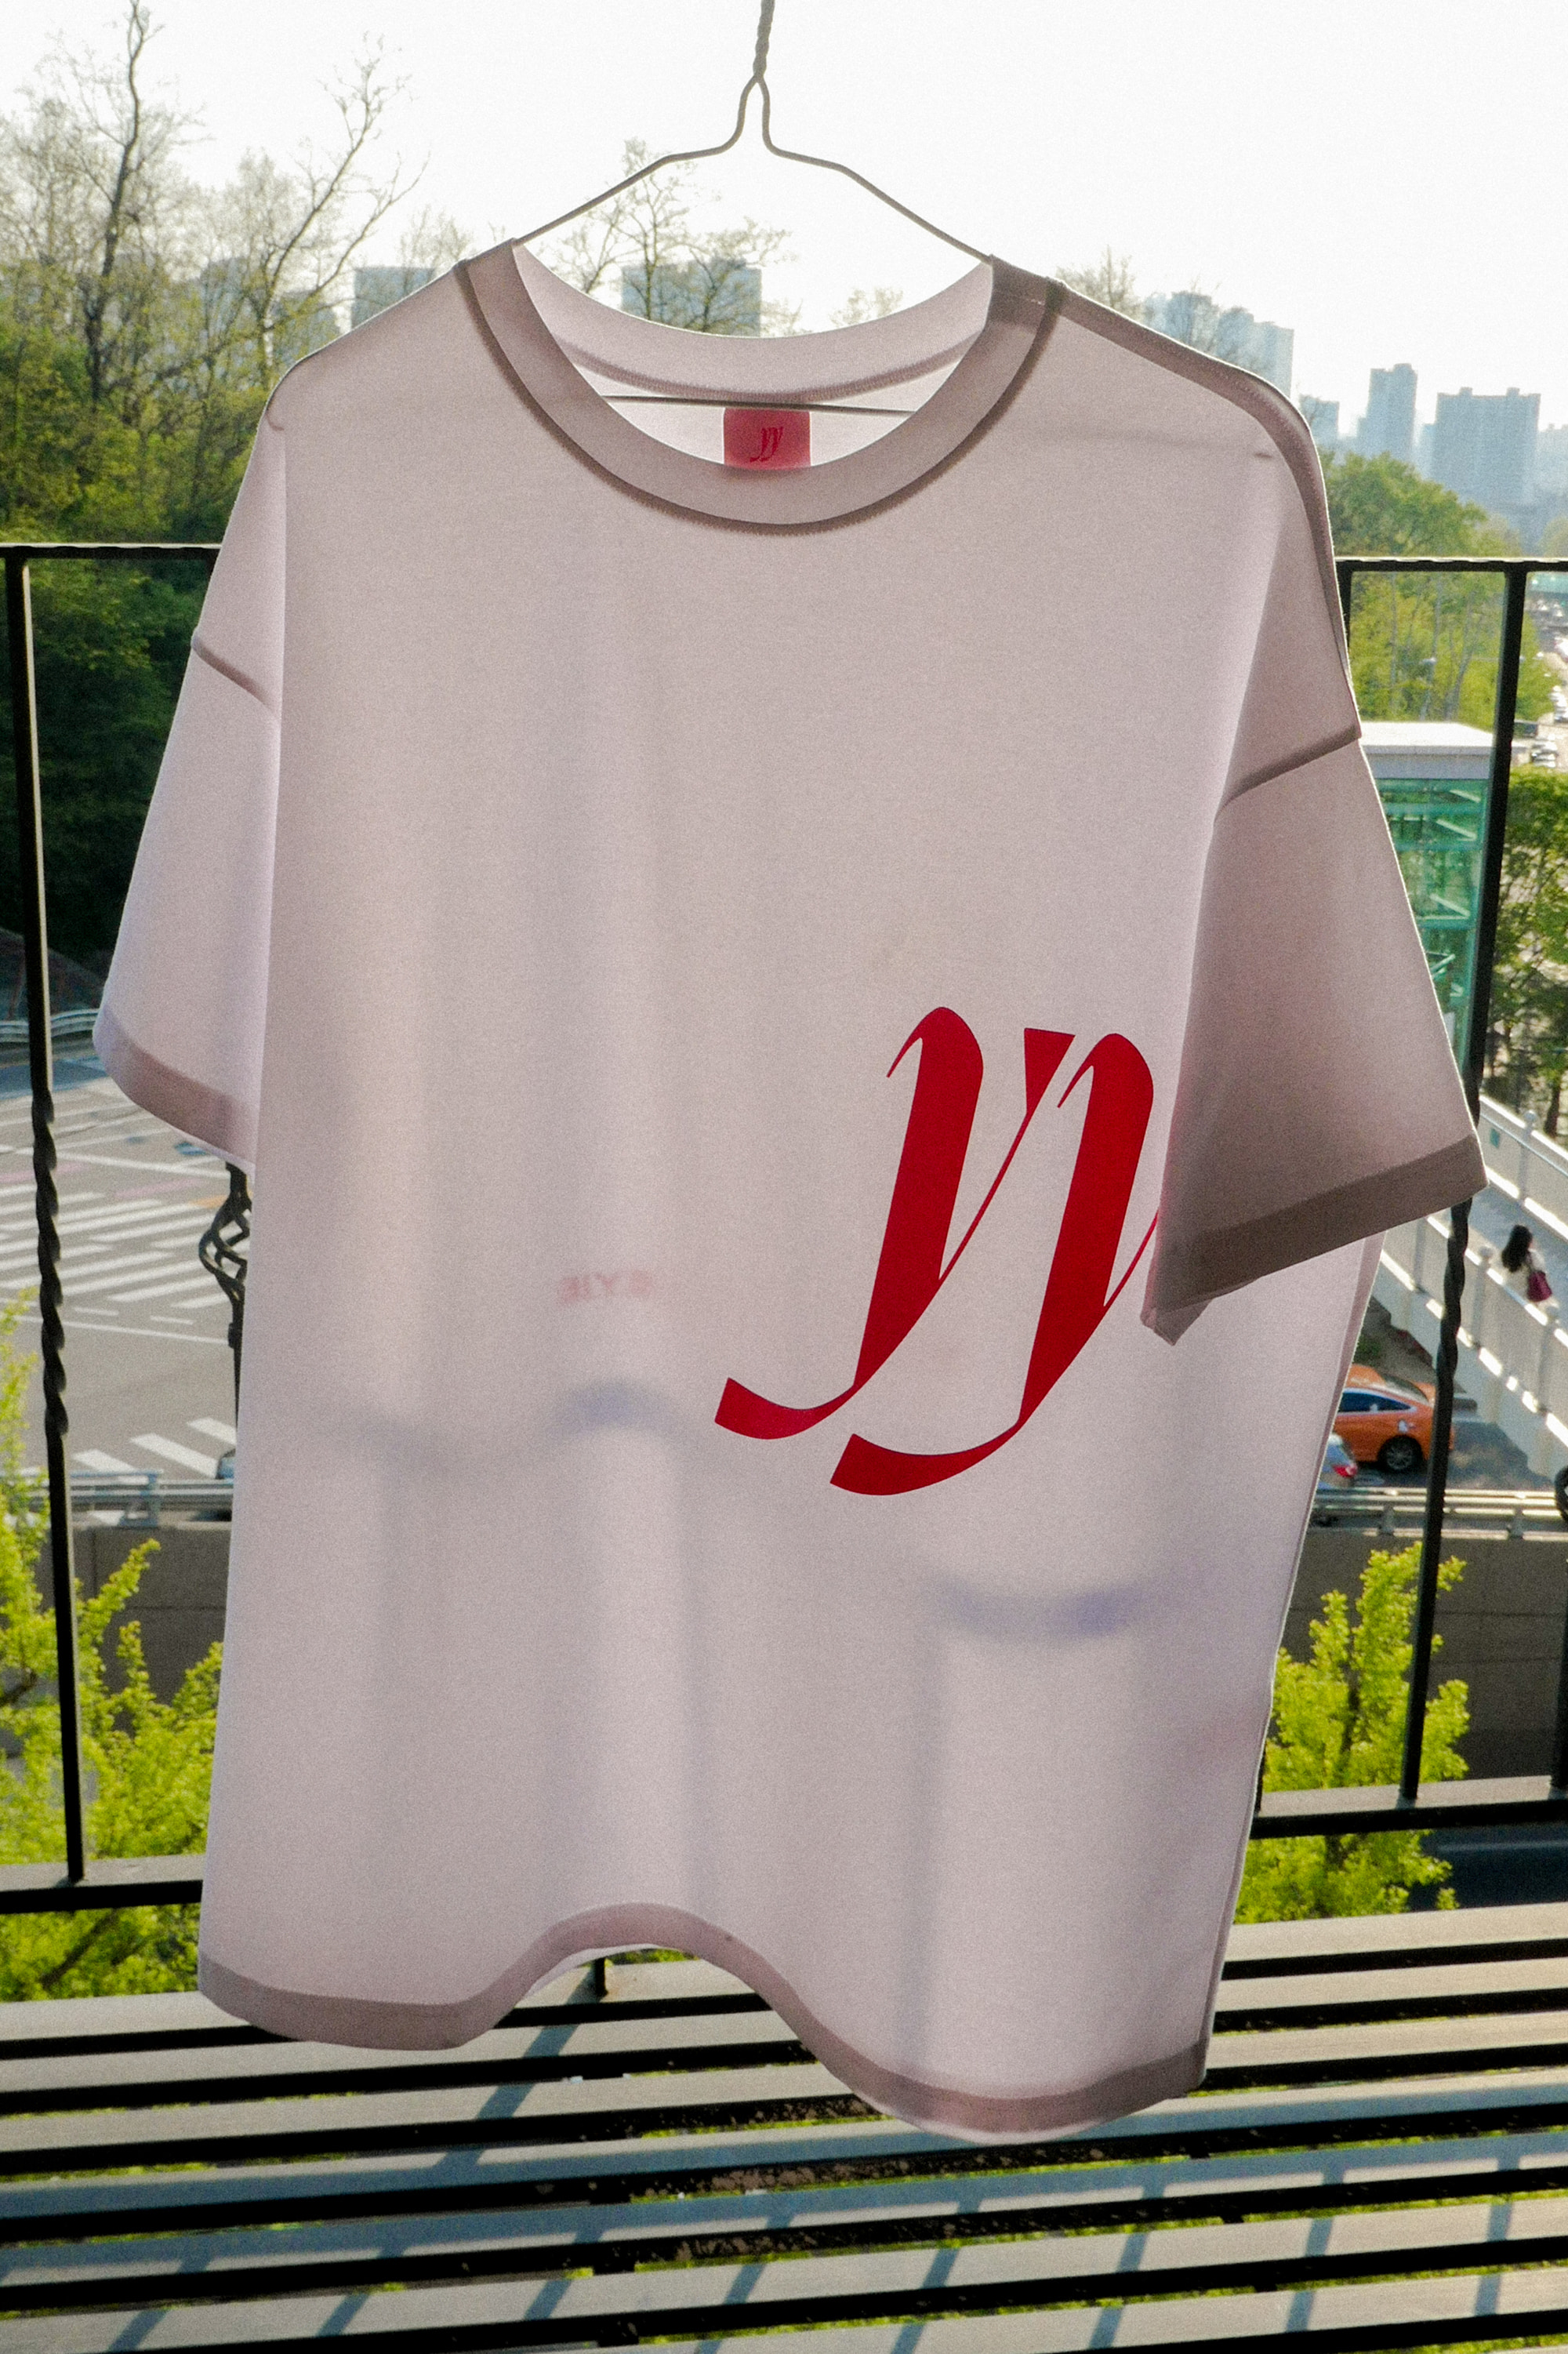 Y.01 Signature YY T-Shirt / White